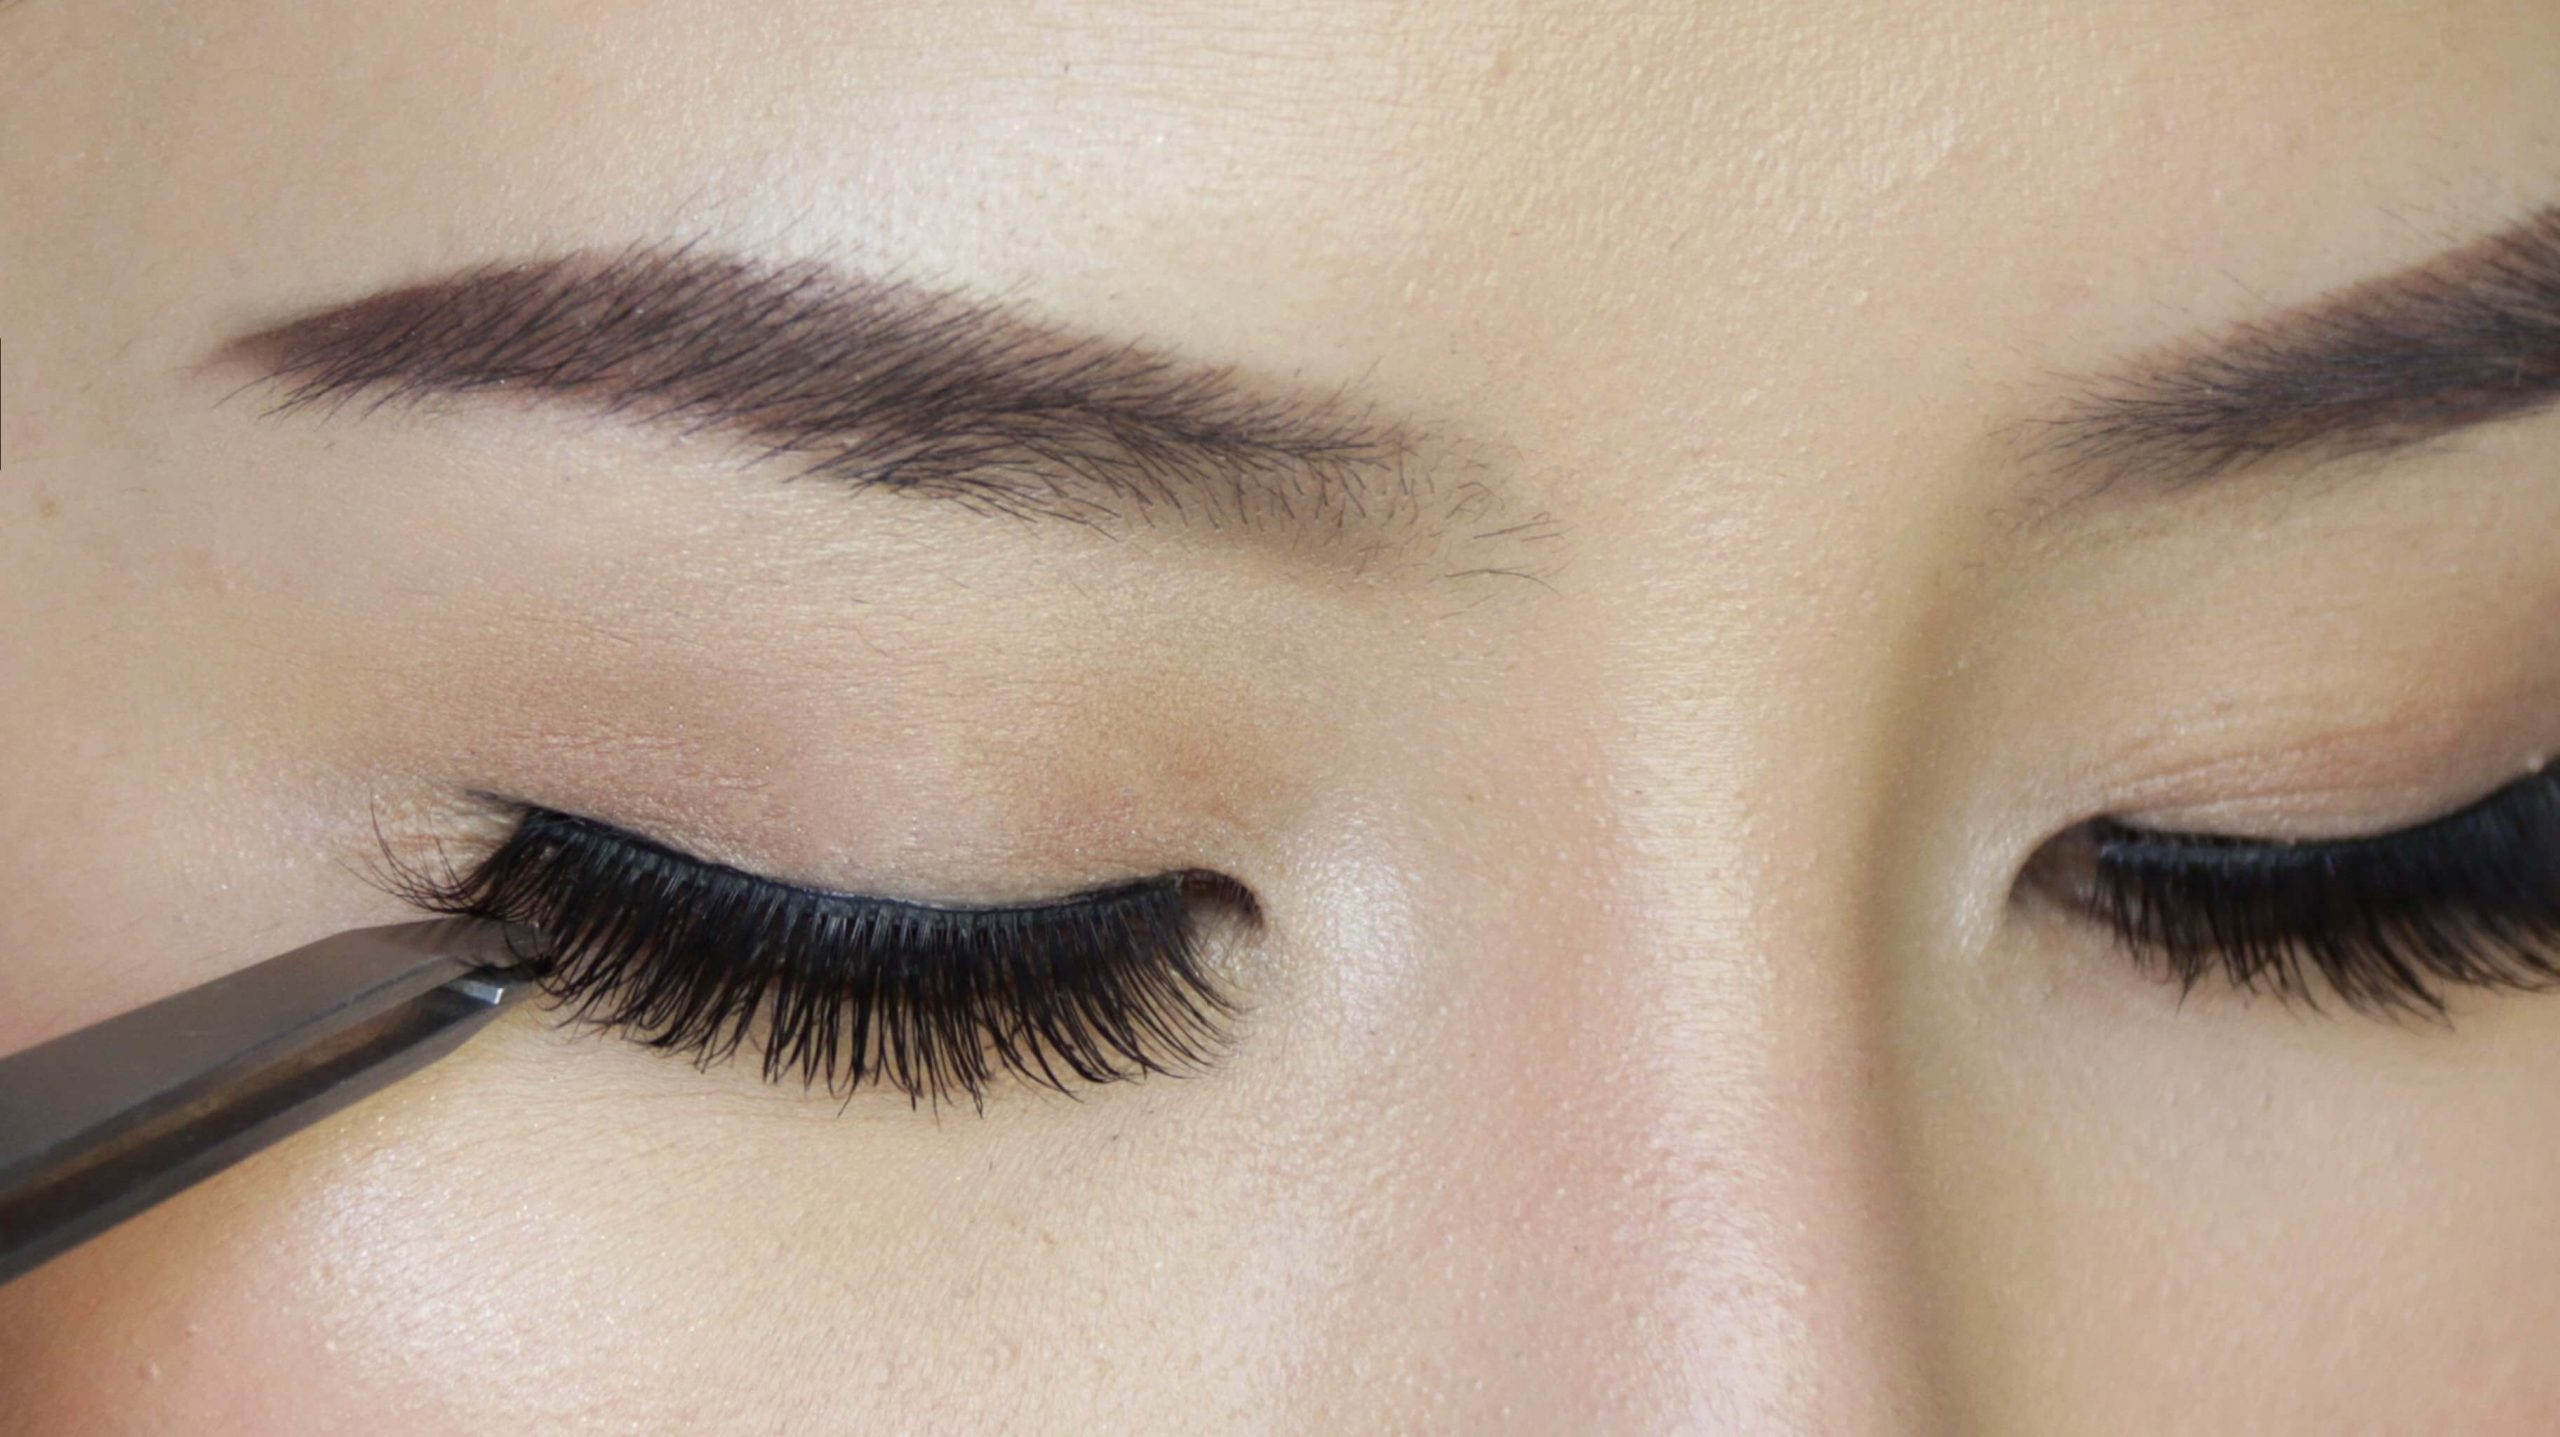 How To Look Like A Diva With Brown False Eyelashes?